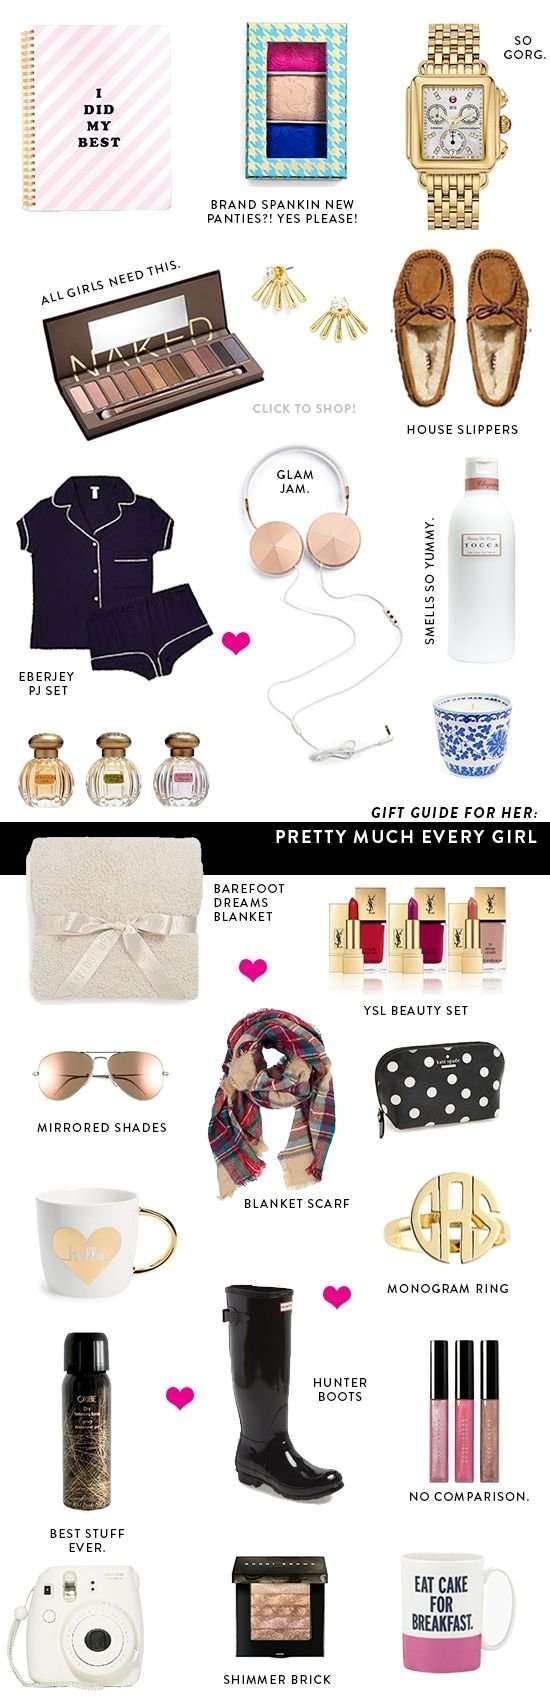 10 Stylish Christmas Ideas For College Girls